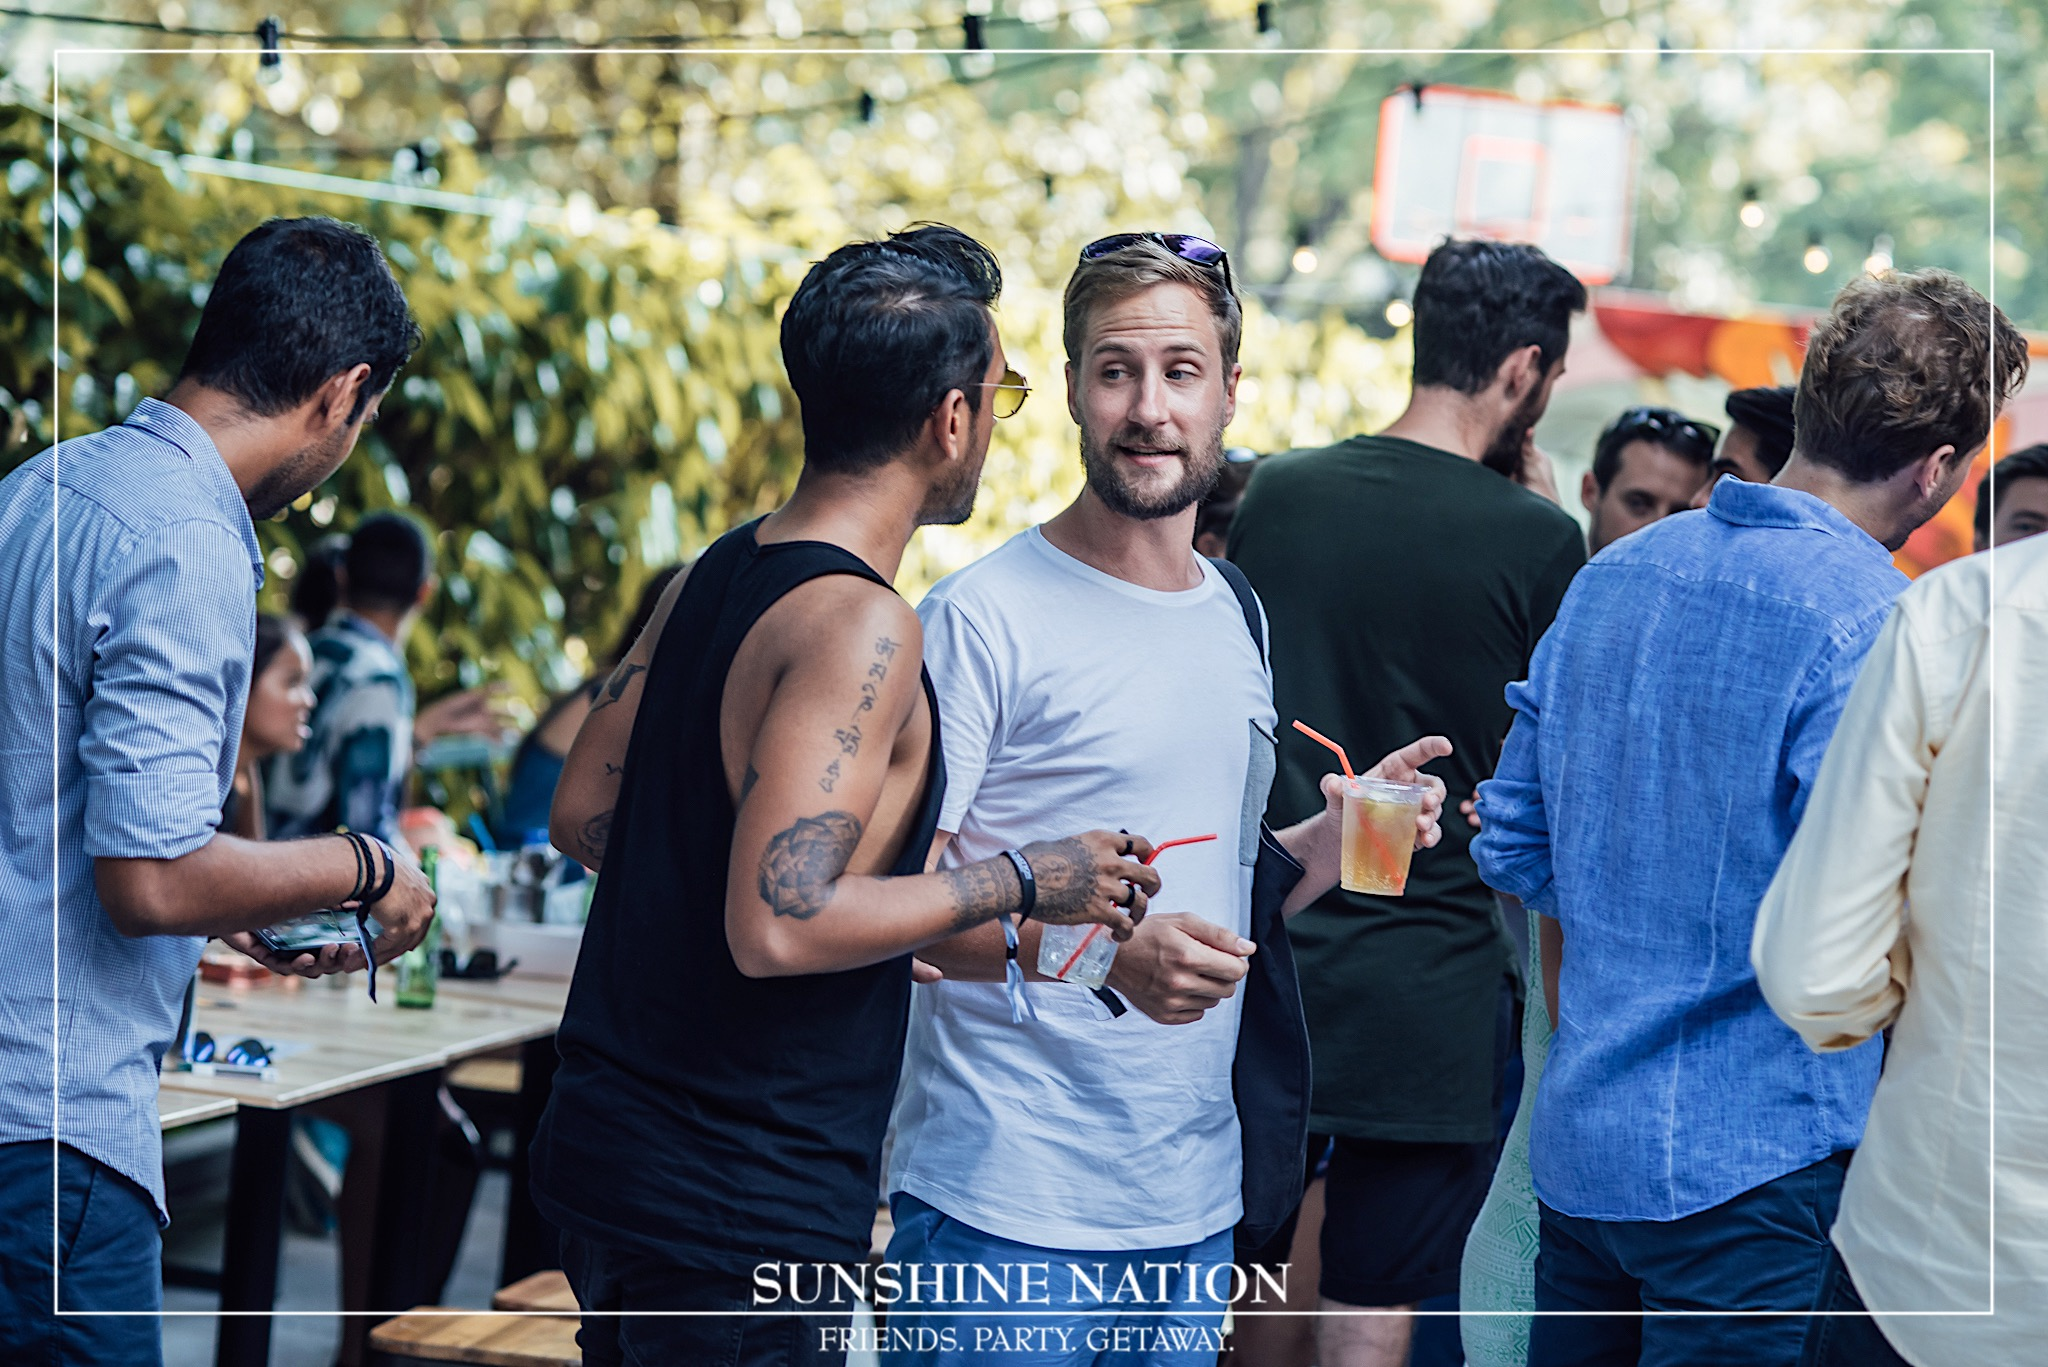 18092016_SunshineNation_Colossal095_Watermarked.jpg